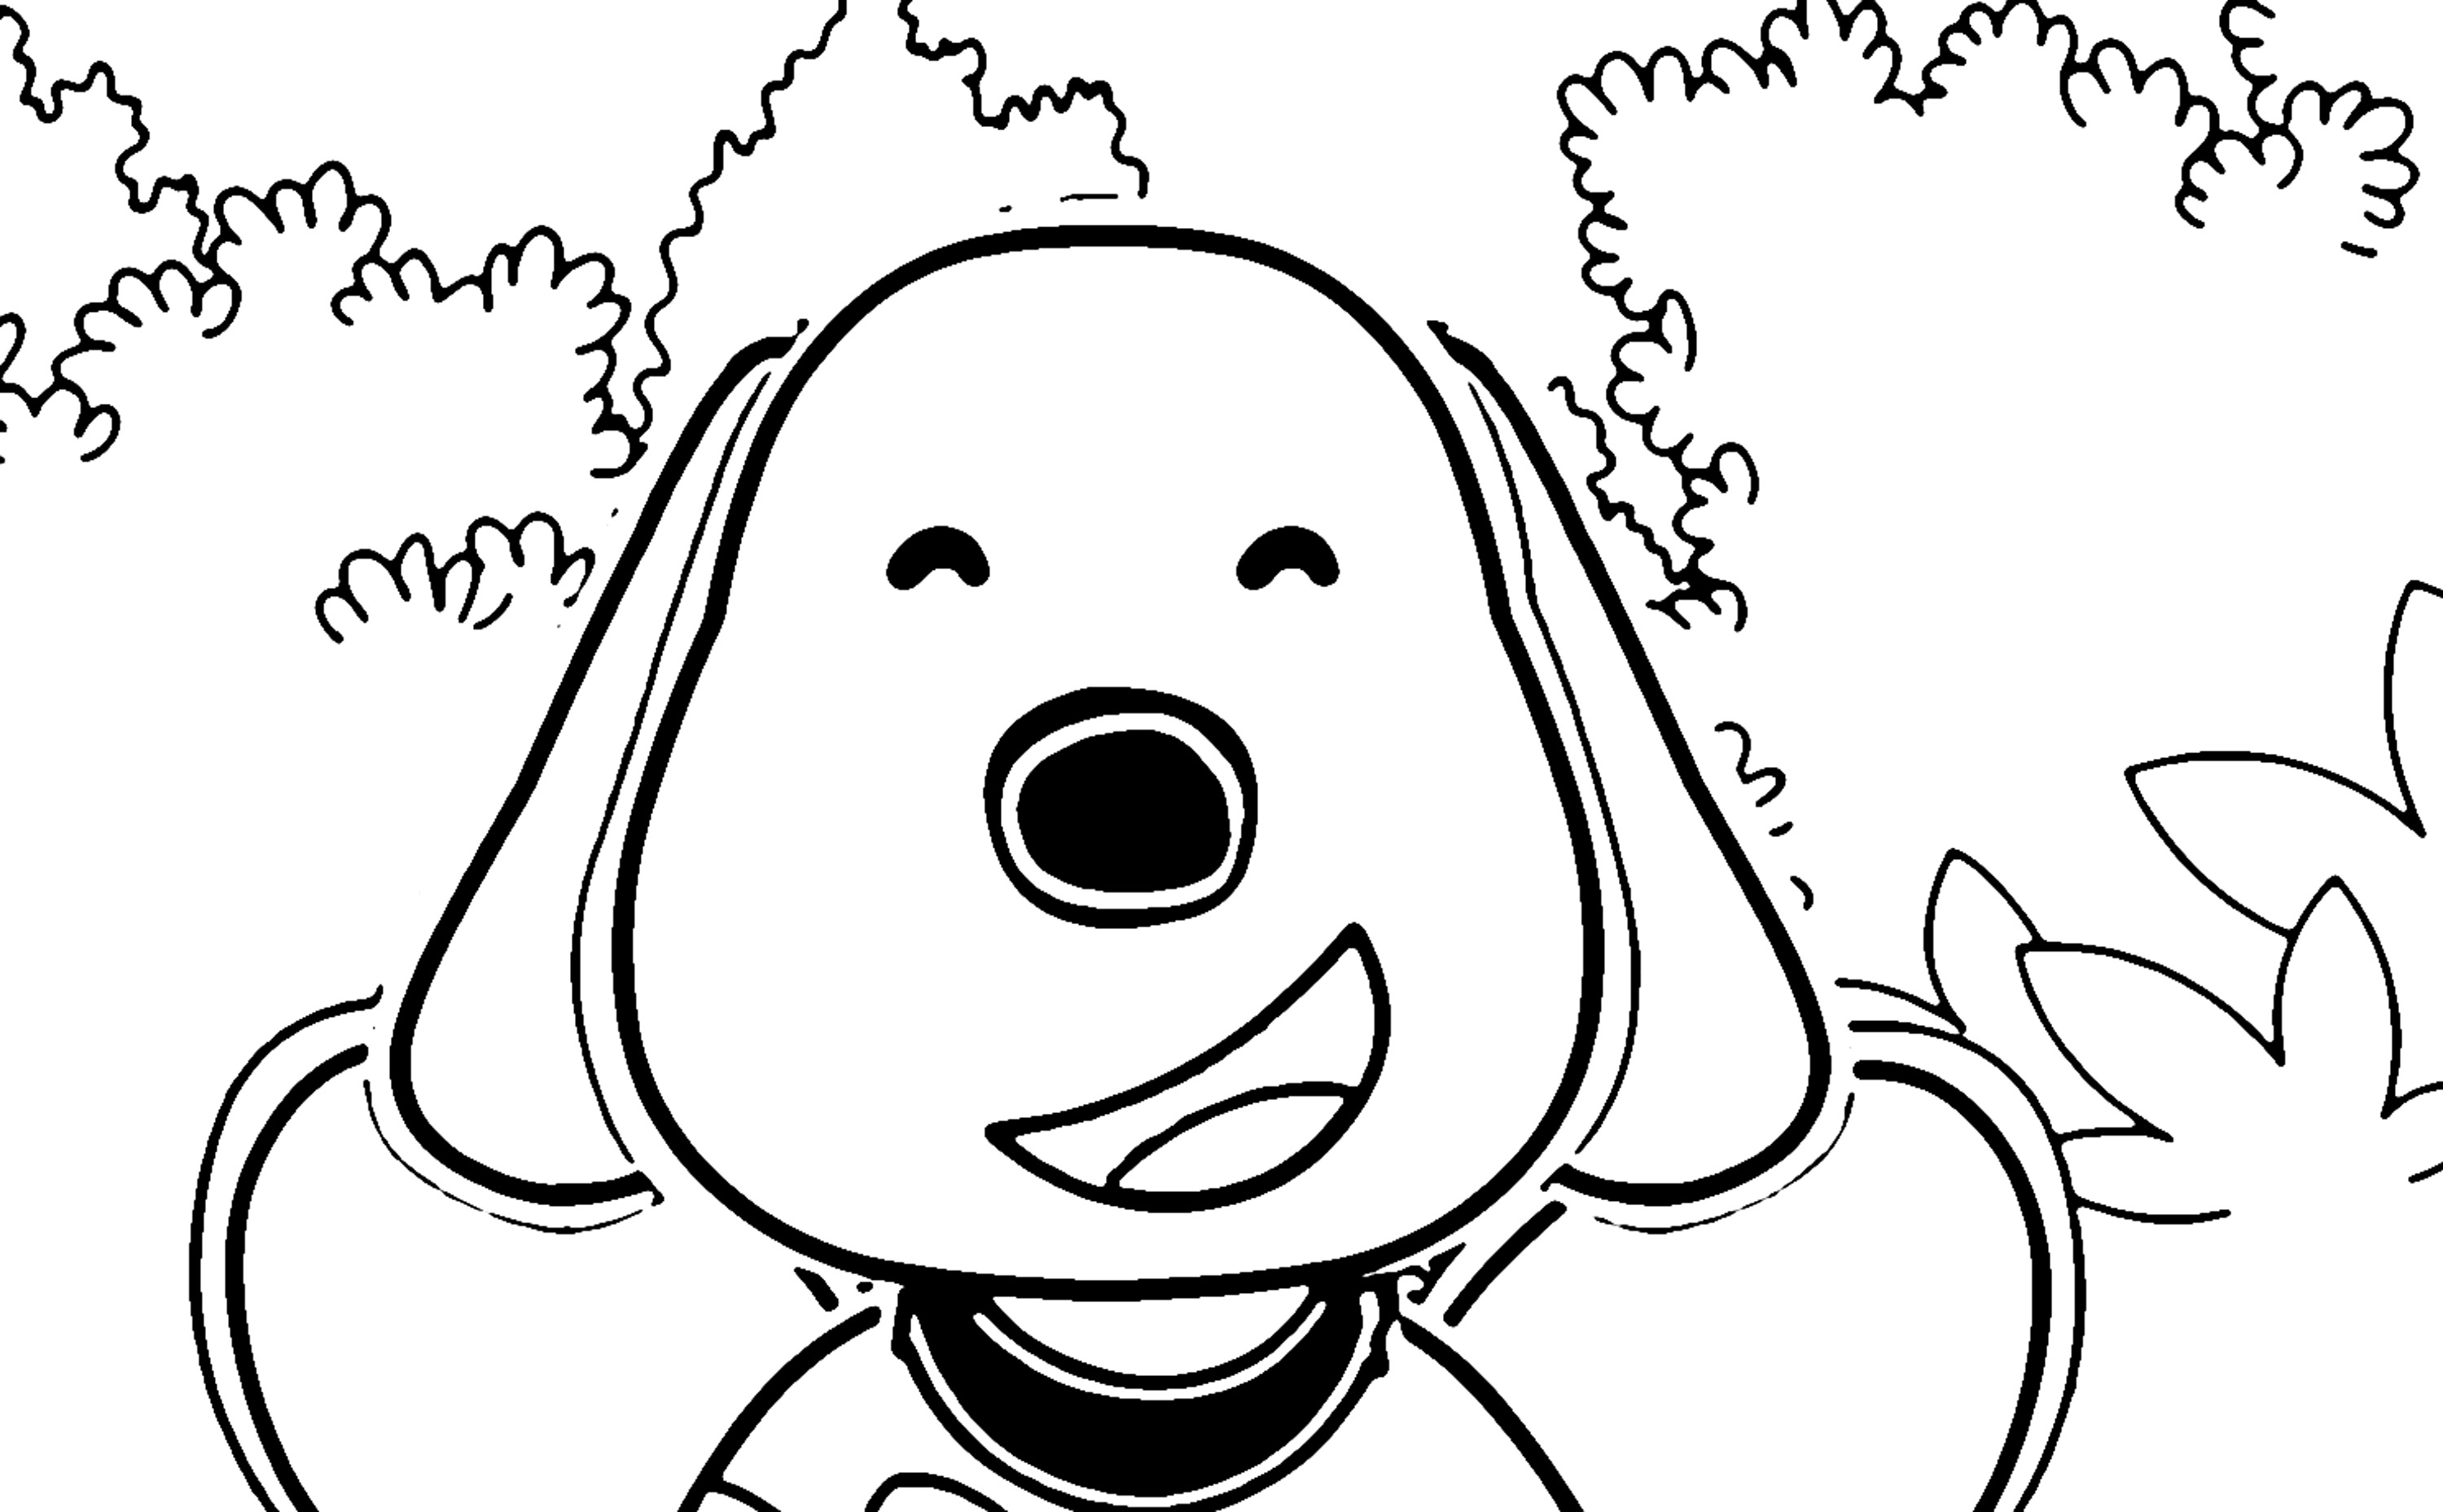 Speaking Cartoon Kids Coloring Page 64